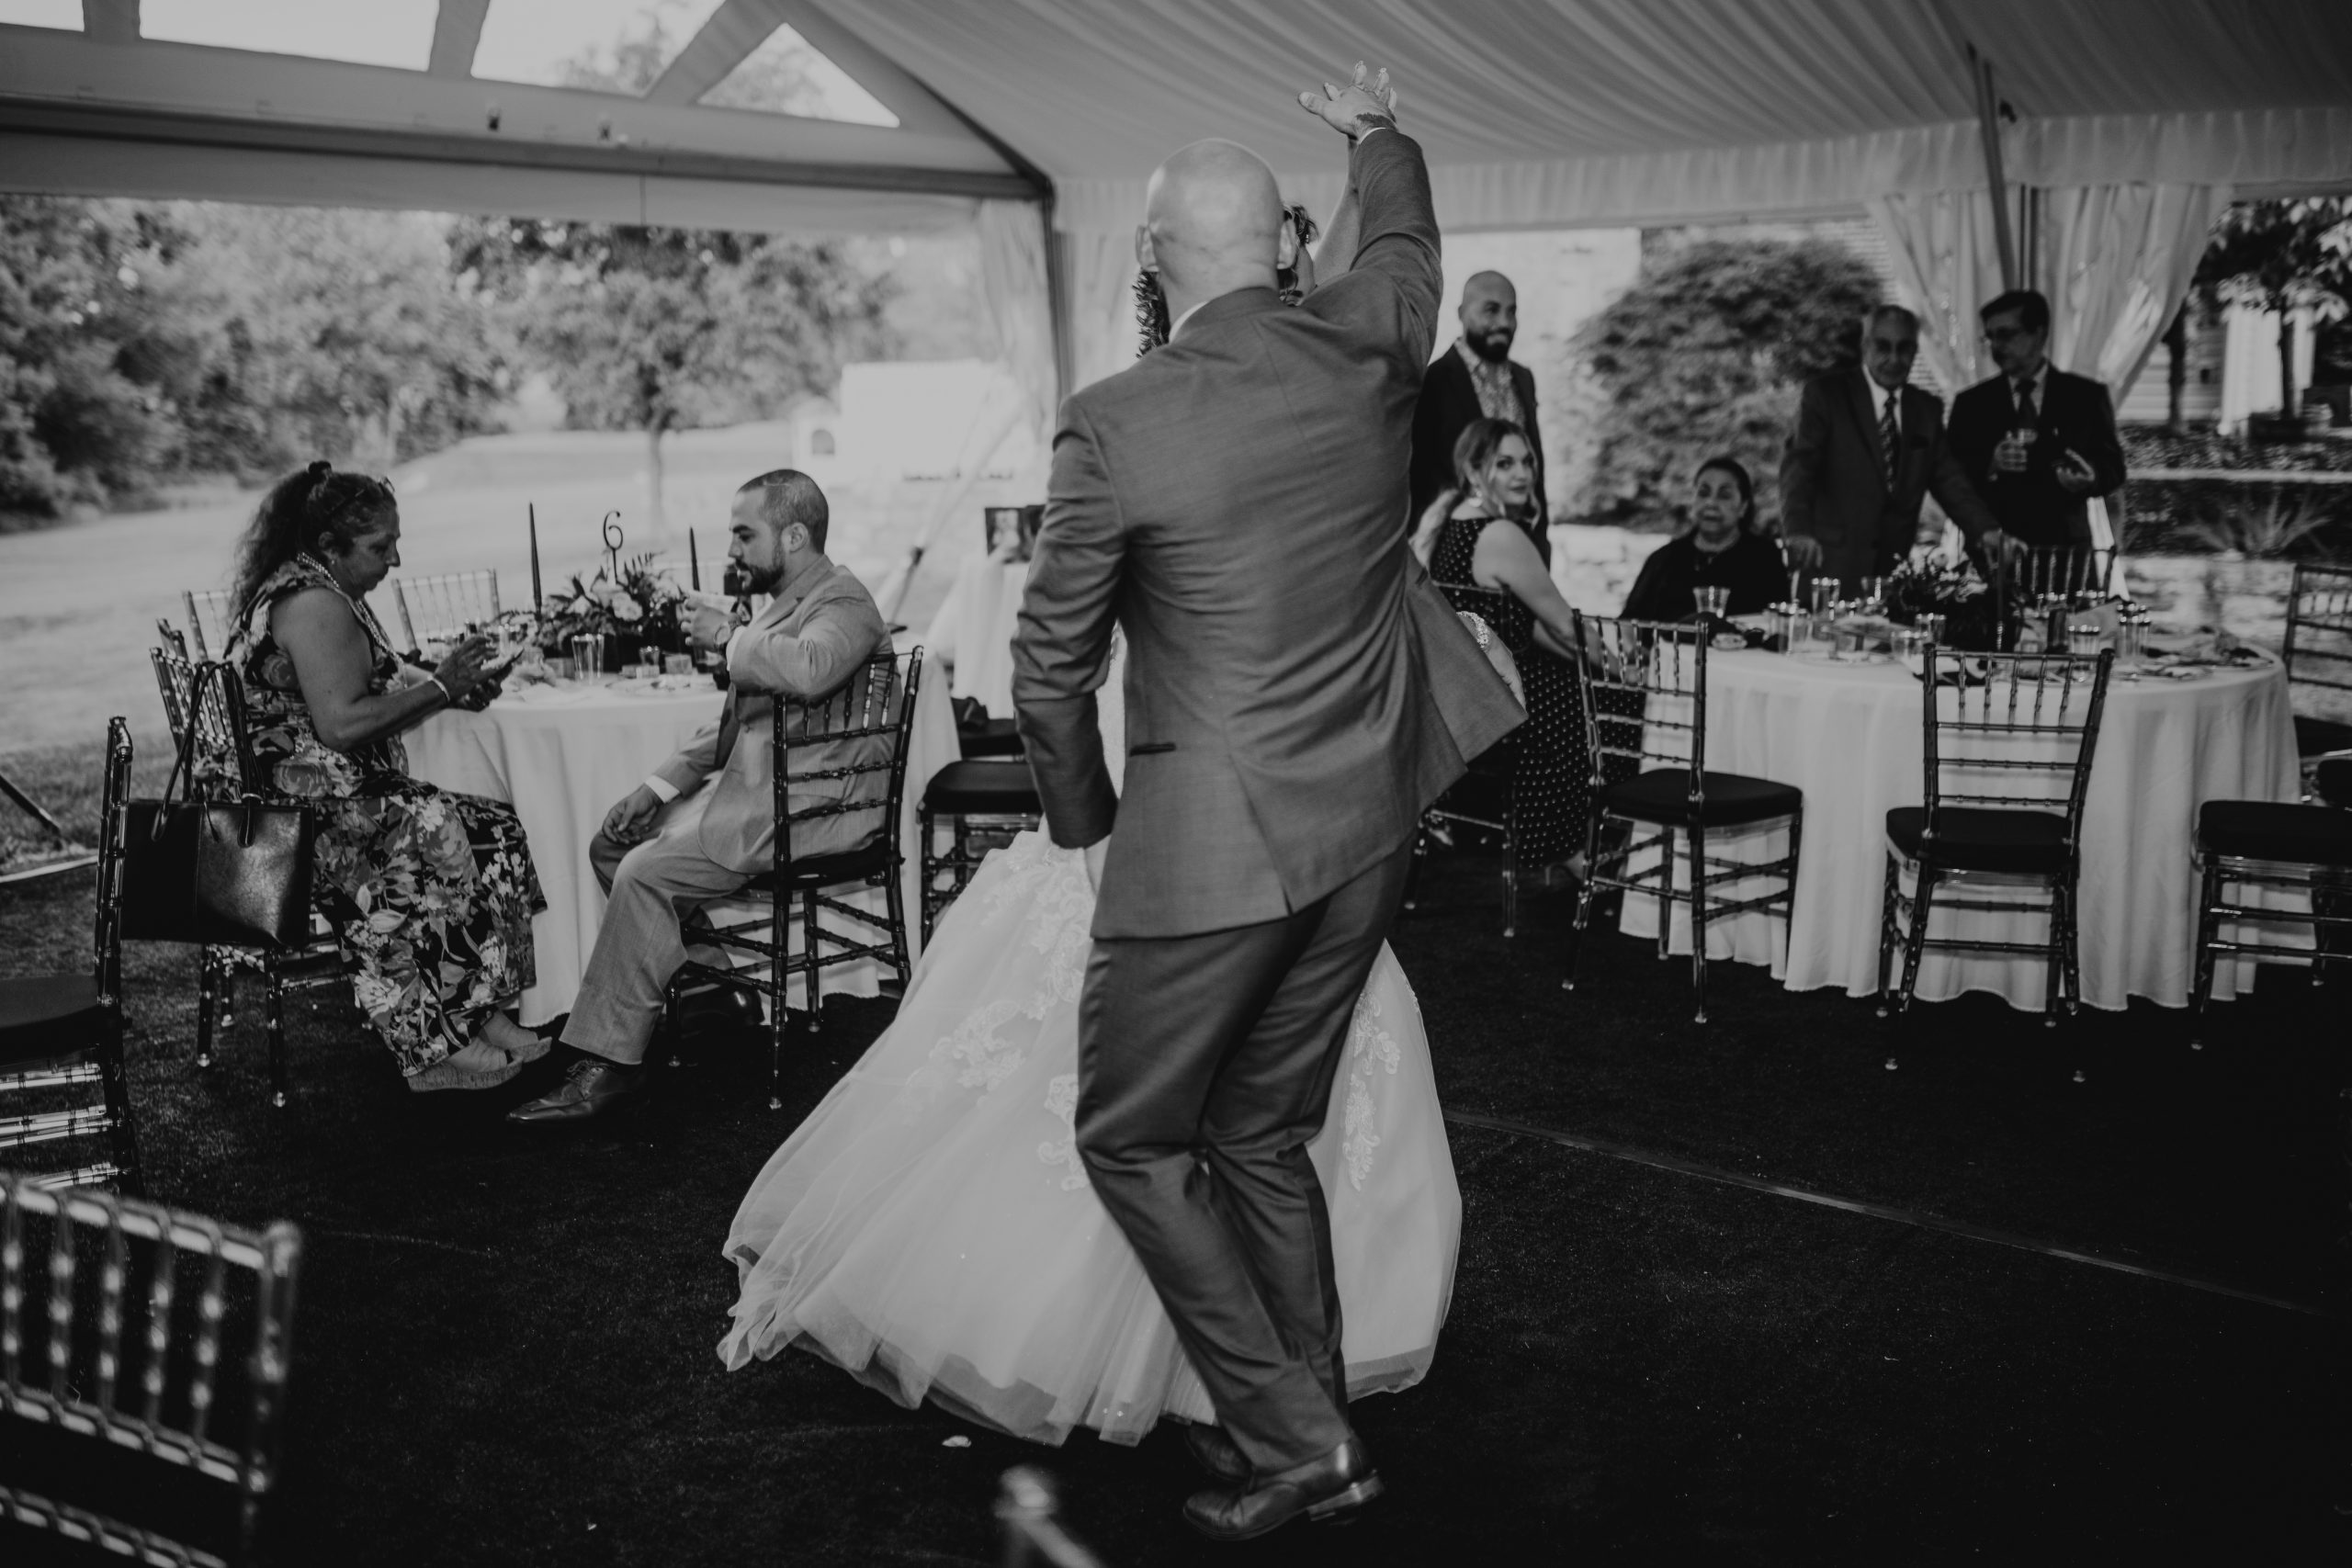 The bride and groom get giggy with it on the dance floor at their reception. Christine and Richard wed on the Chestnut Hill Villa grounds on May of 2019. This organic ethereal styled wedding was captured by Garnet Dahlia Photography and featured on Dream Weddings.